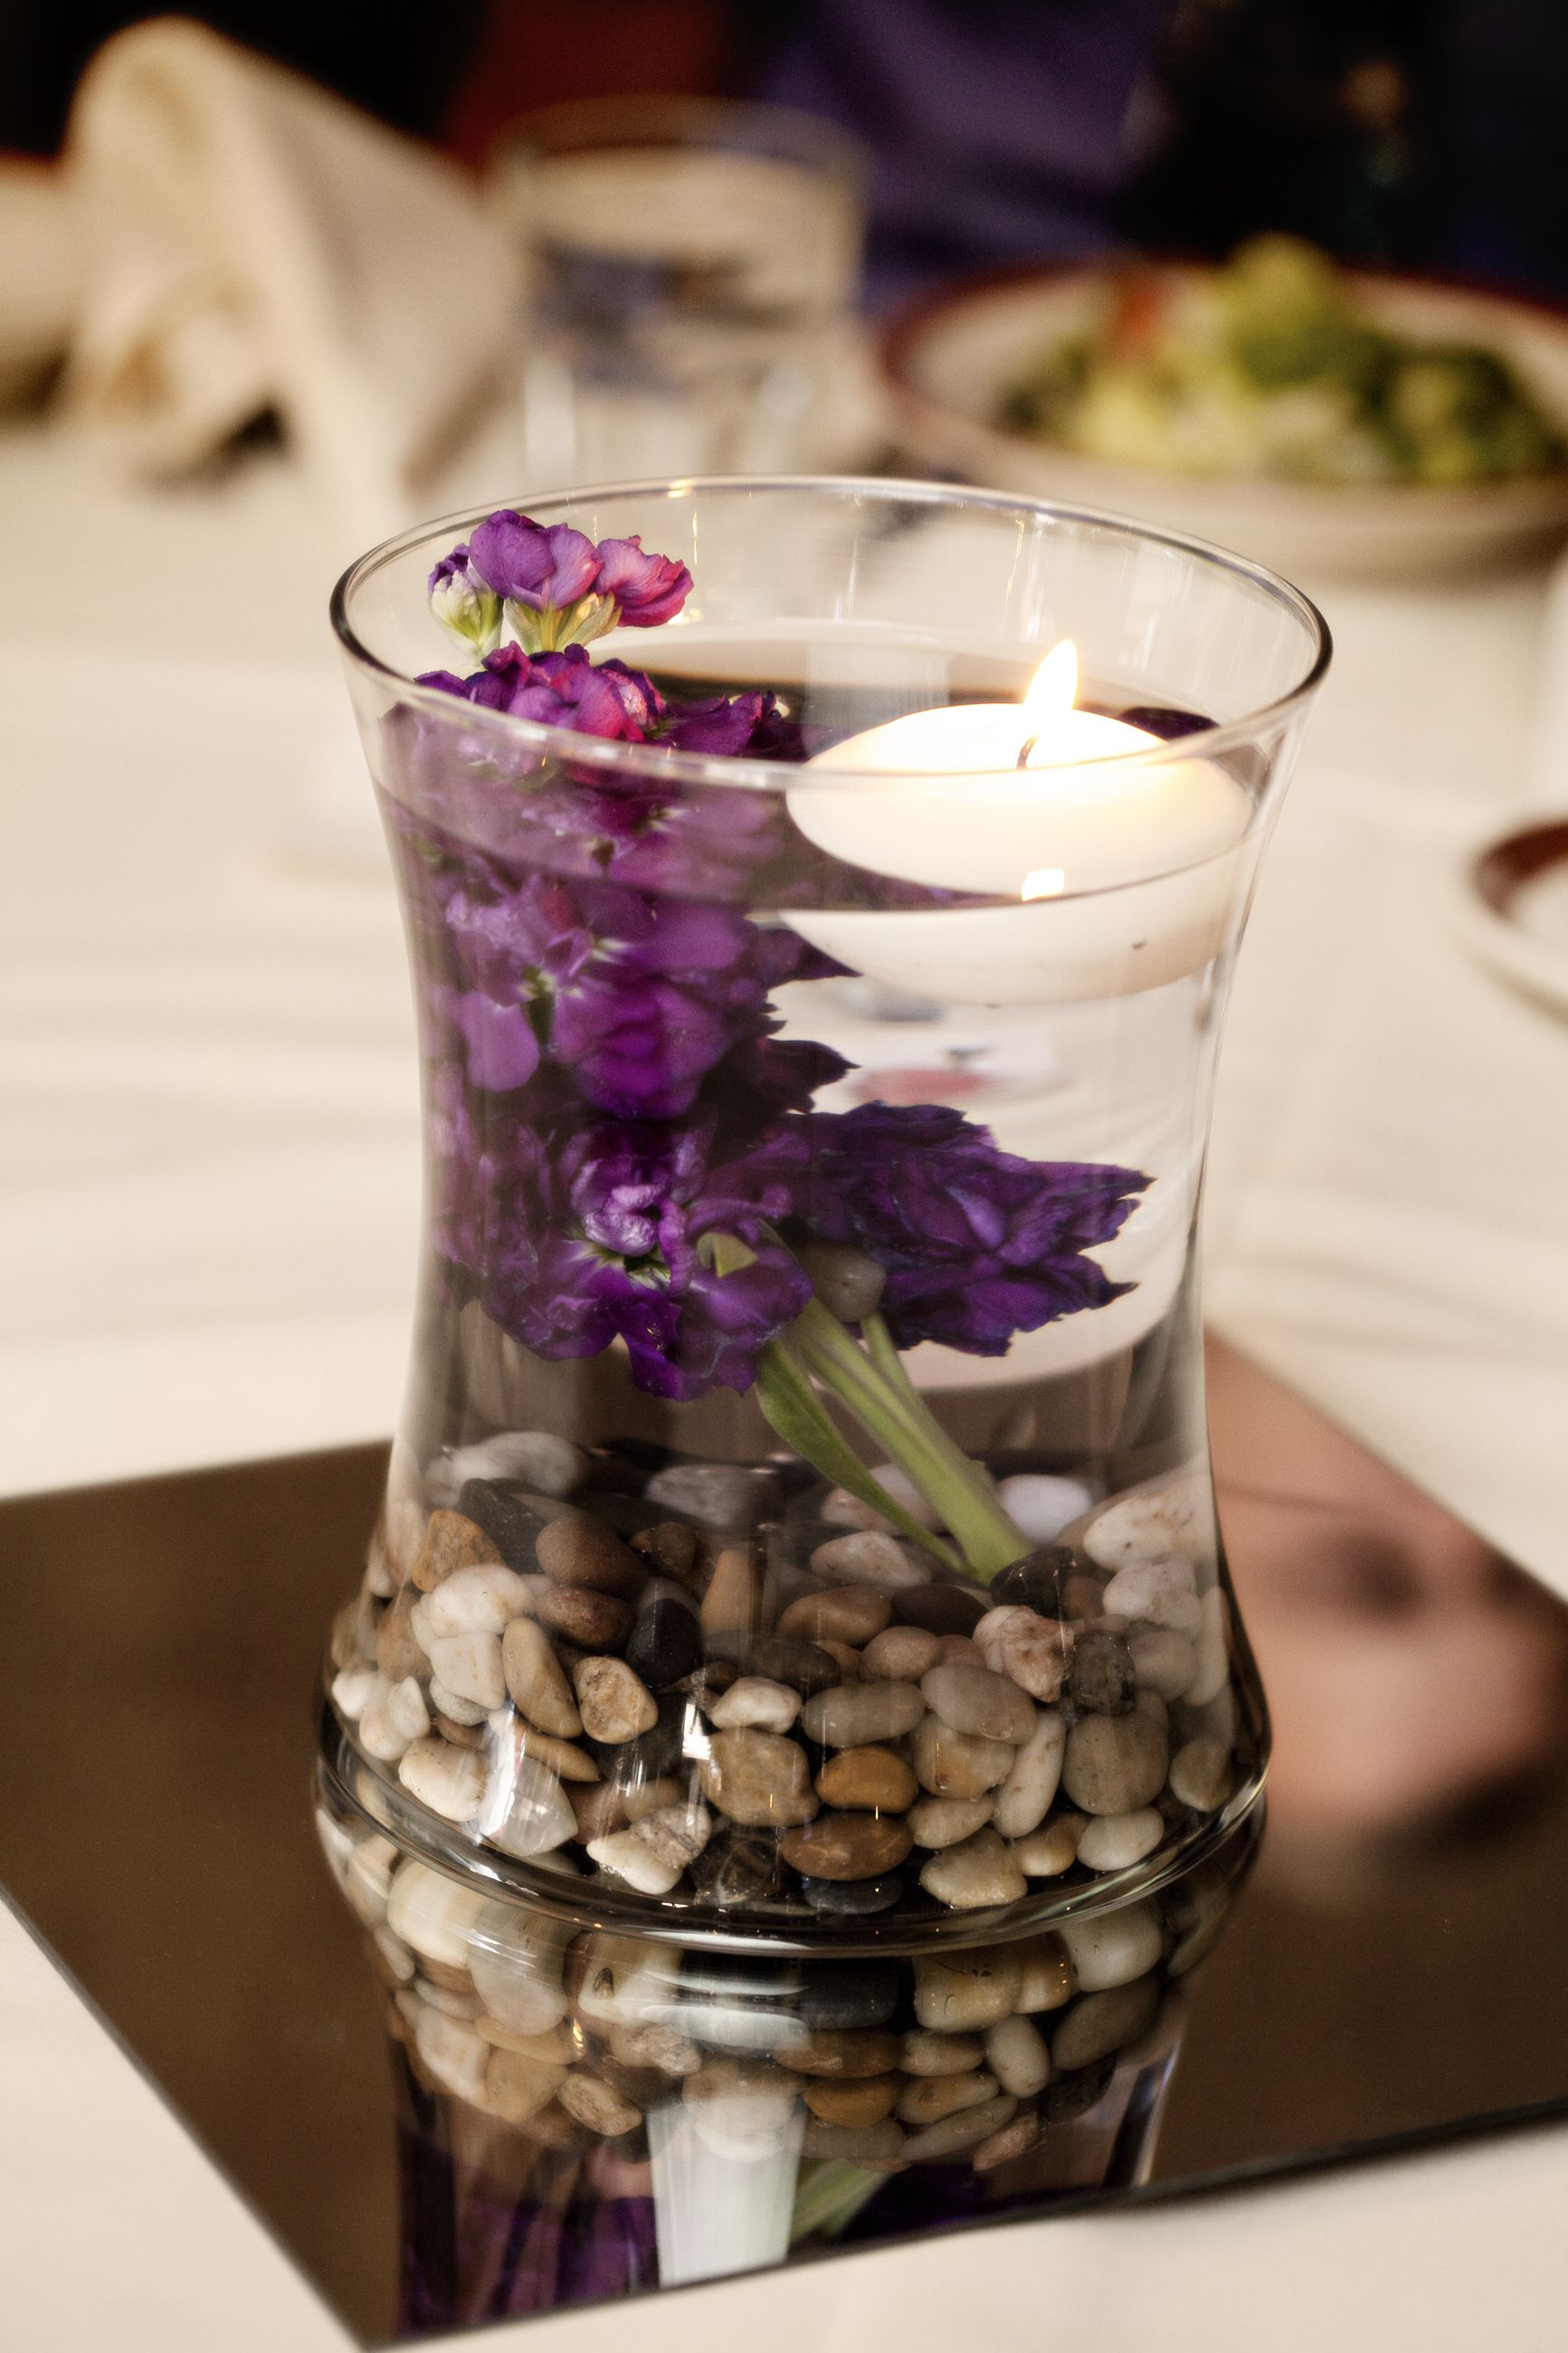 Combine any size glass vase with river rock a stem of